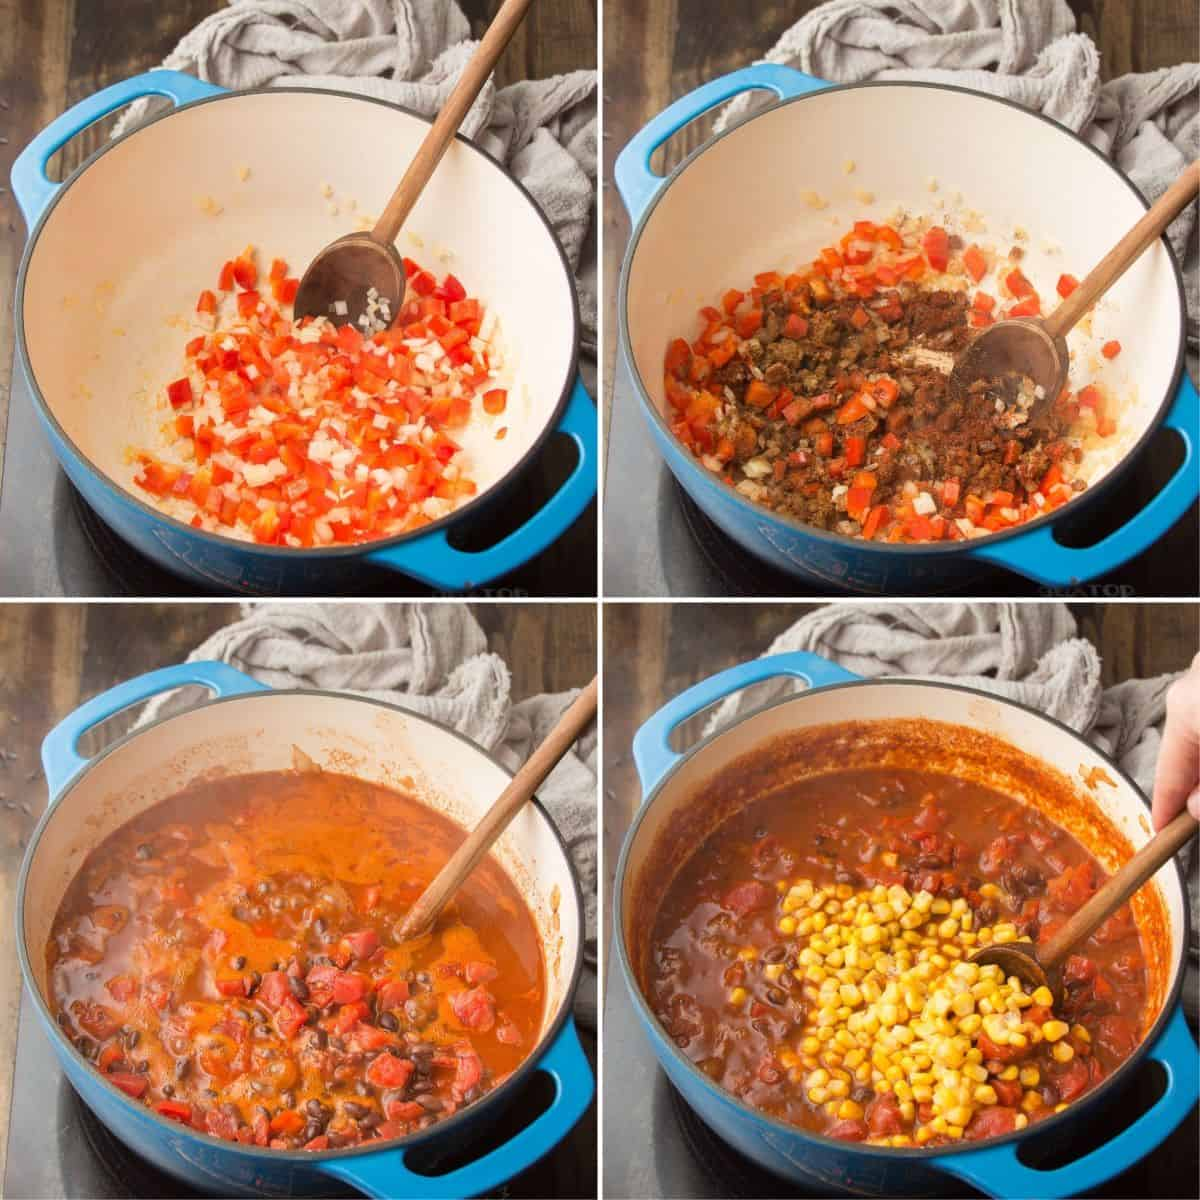 Collage Showing 4 Steps for Making Black Bean Chili: Sweat Veggies, Add Spices, Add Tomatoes, Beans and Broth, and Add Corn